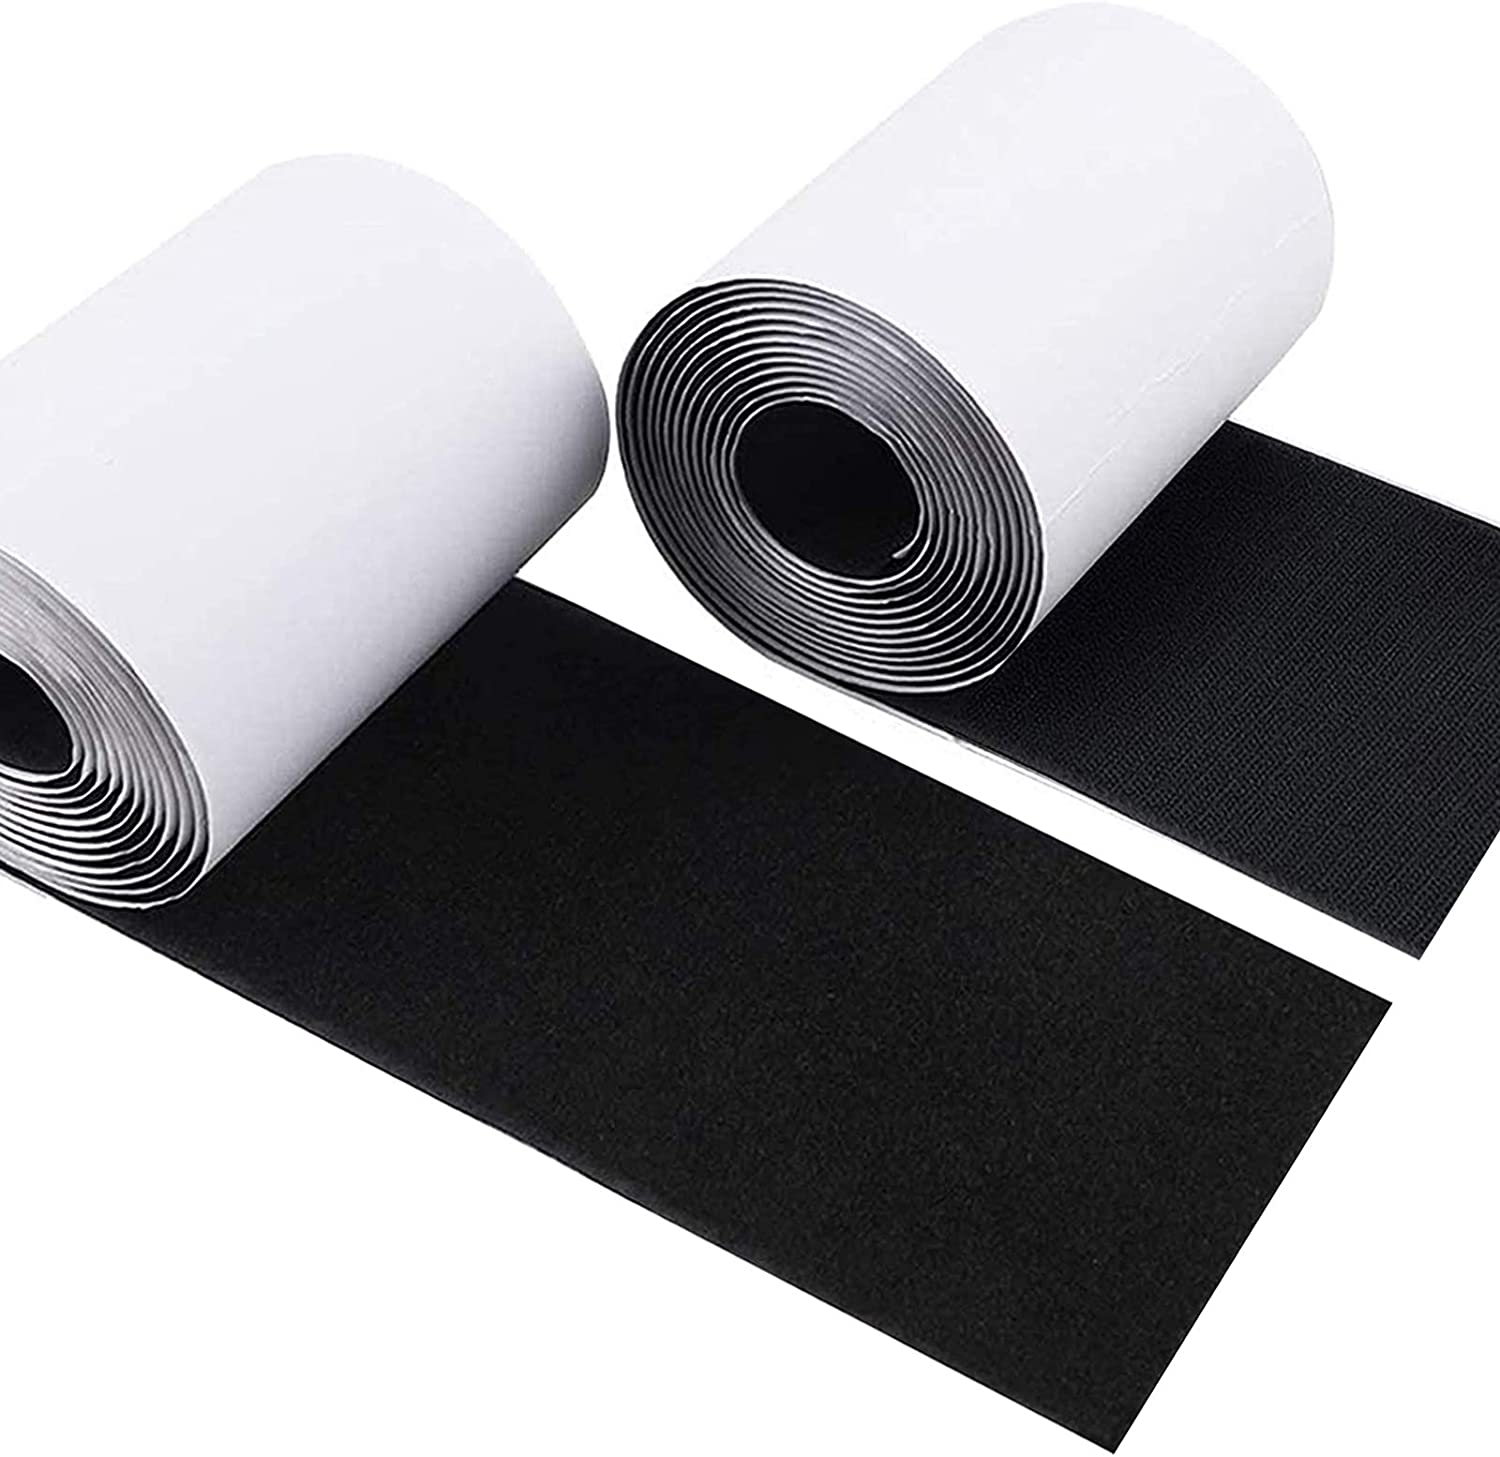 4 Inch Wide 3.28 Ft Long Sticky Roll It is very popular and Back Loop Tape Hook Se Dallas Mall